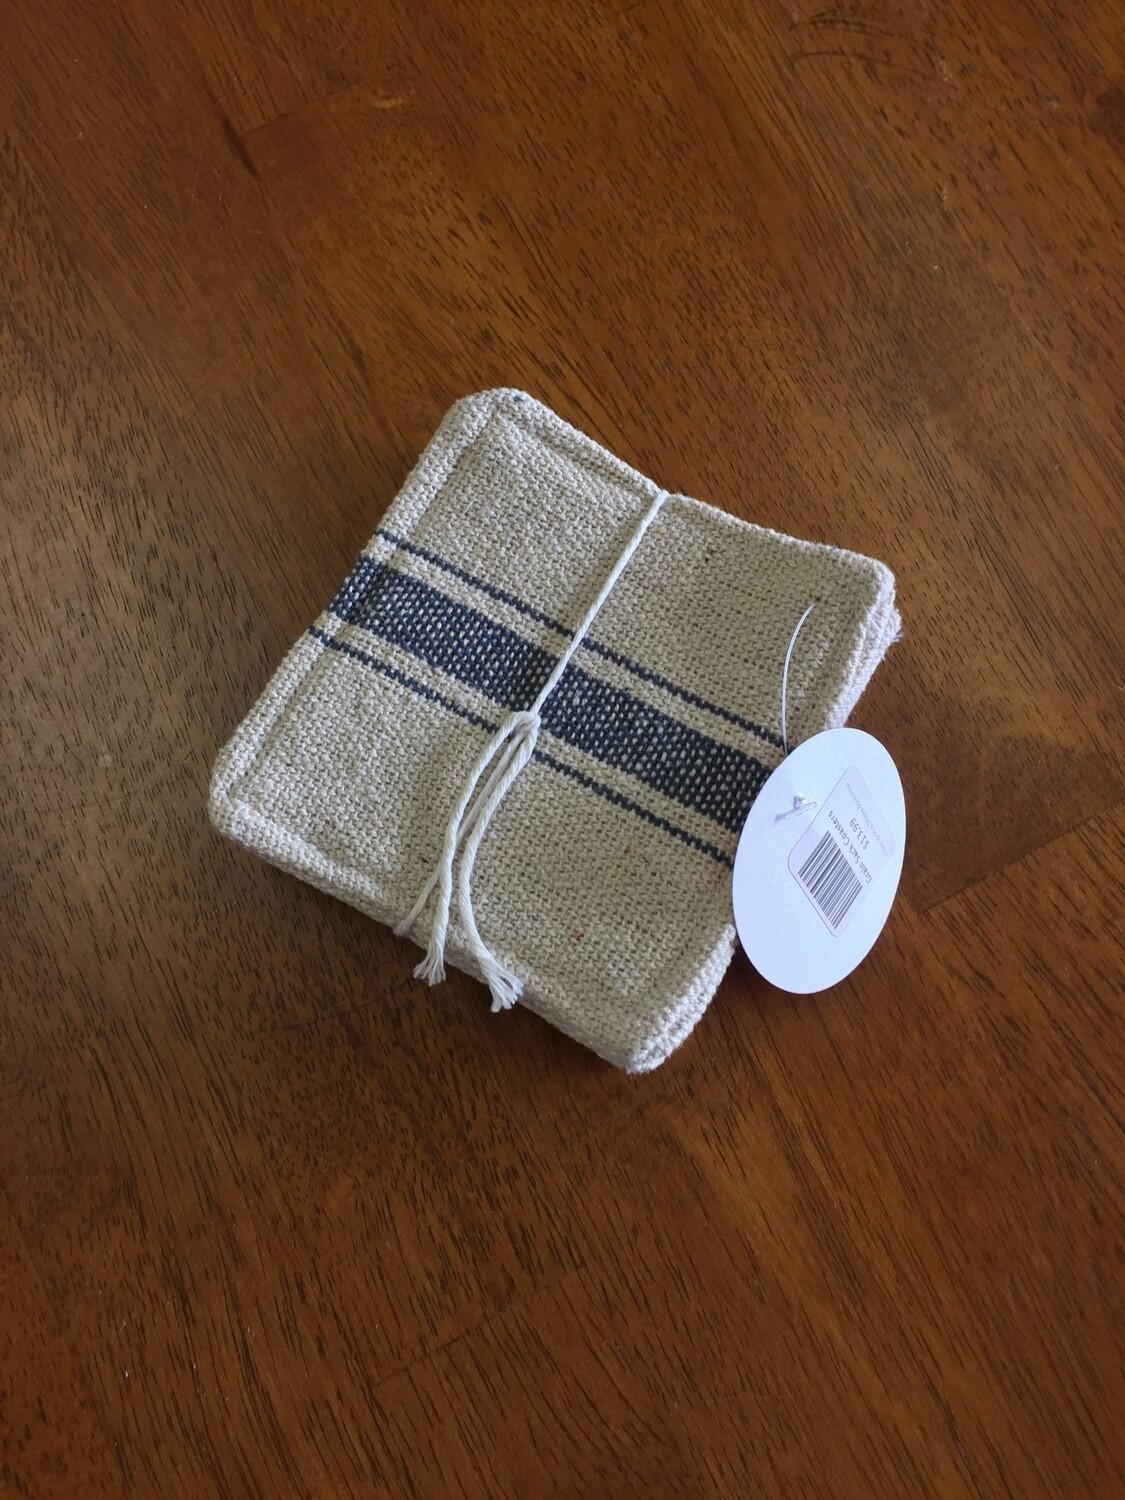 Grain Sack Coasters